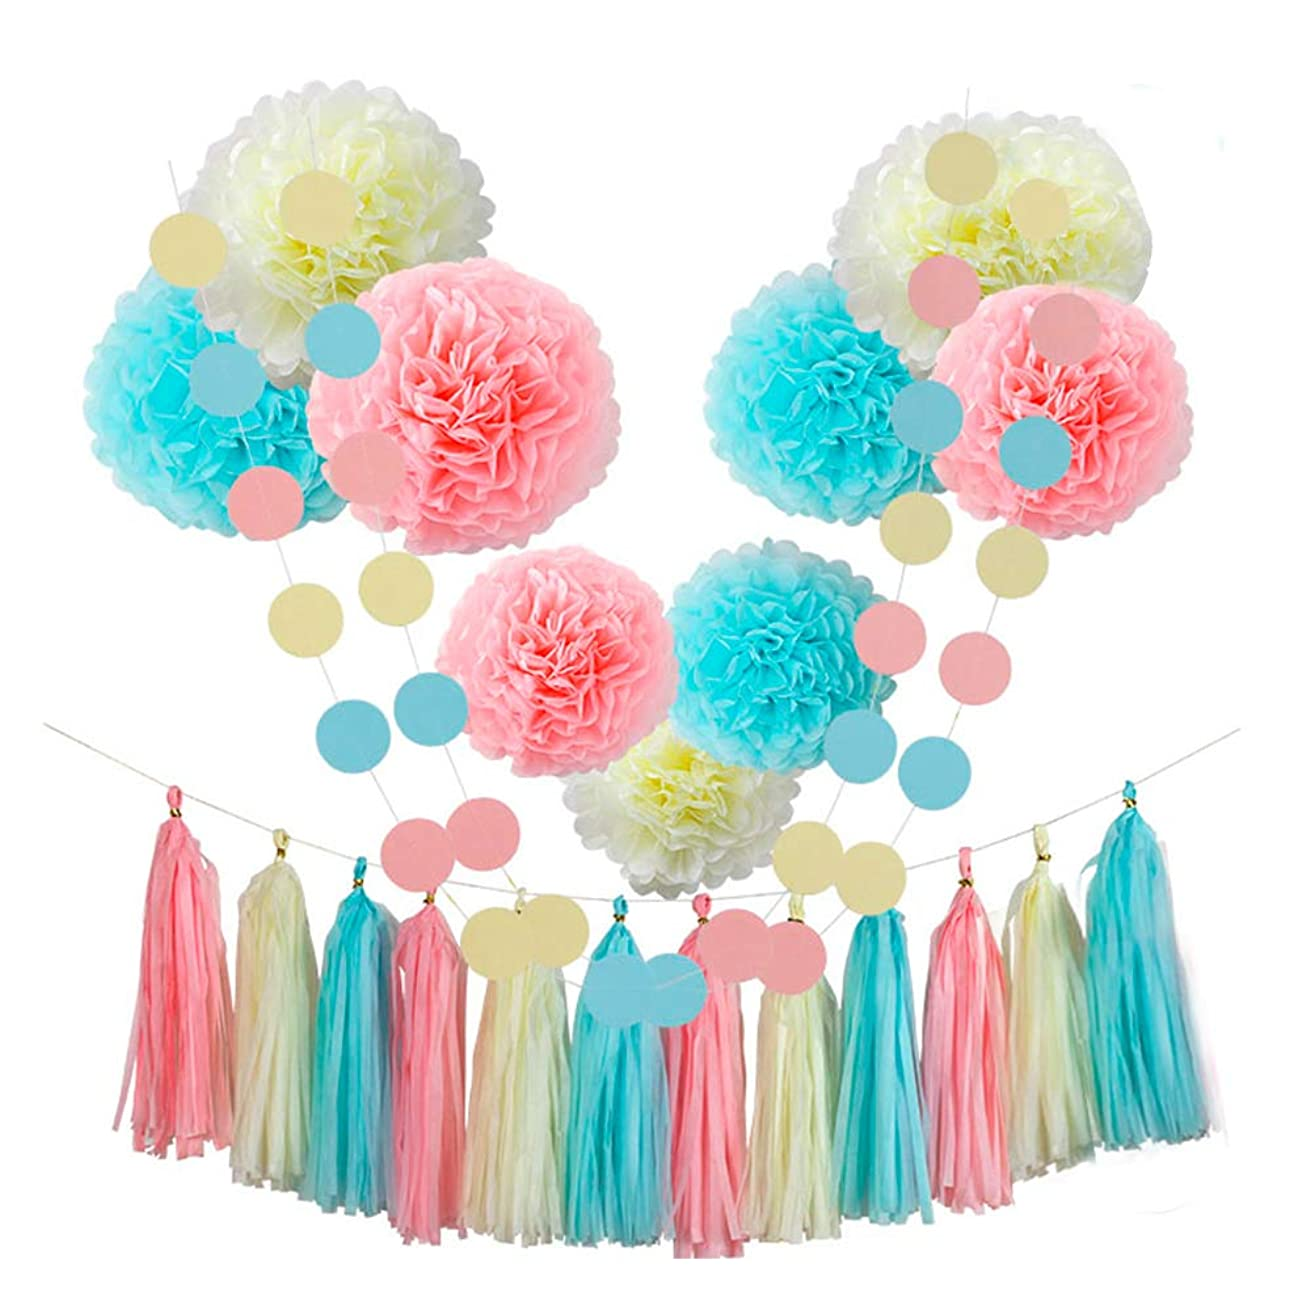 CHOTIKA 23 pcs Tissue Paper Flowers Pom Poms Party Decorations Tassel Garland for Baby Girl Unicorn Birthday Party Supplies Bridal Shower Decorative Decor 100% Premium Paper(Blue, Pink, Yellow)